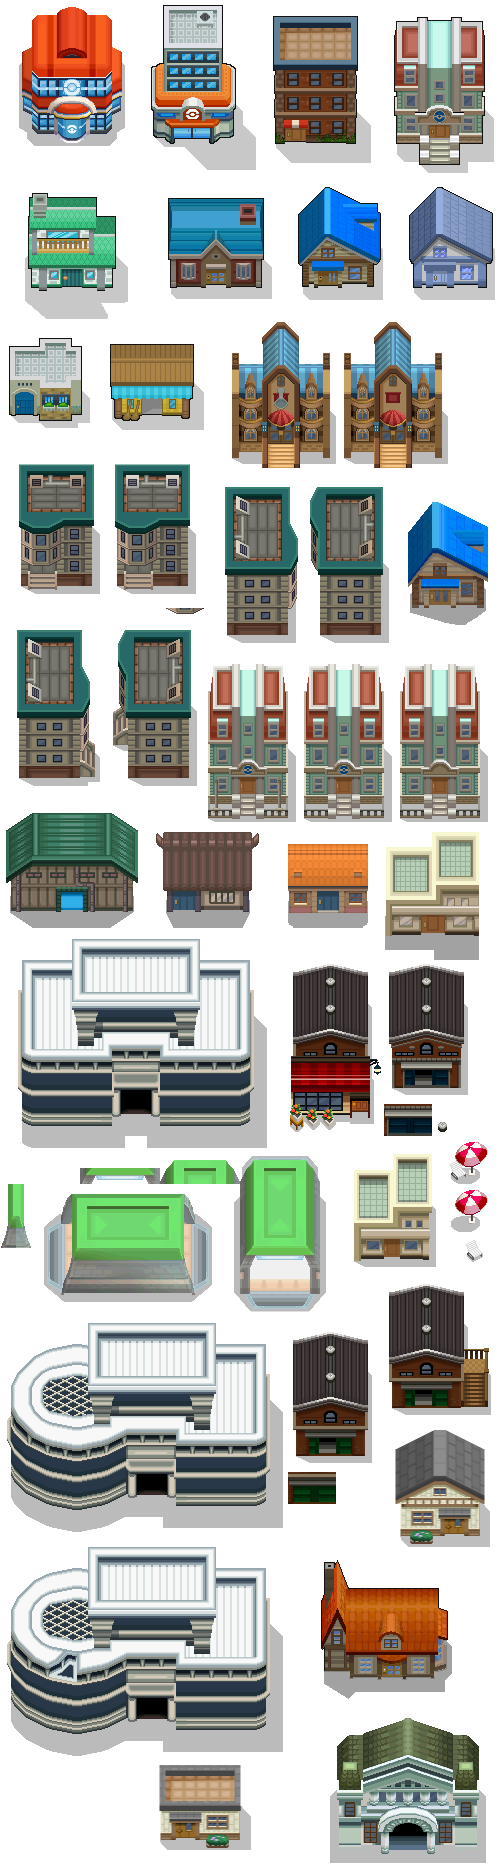 Pokémon-Tileset: BW Buildings